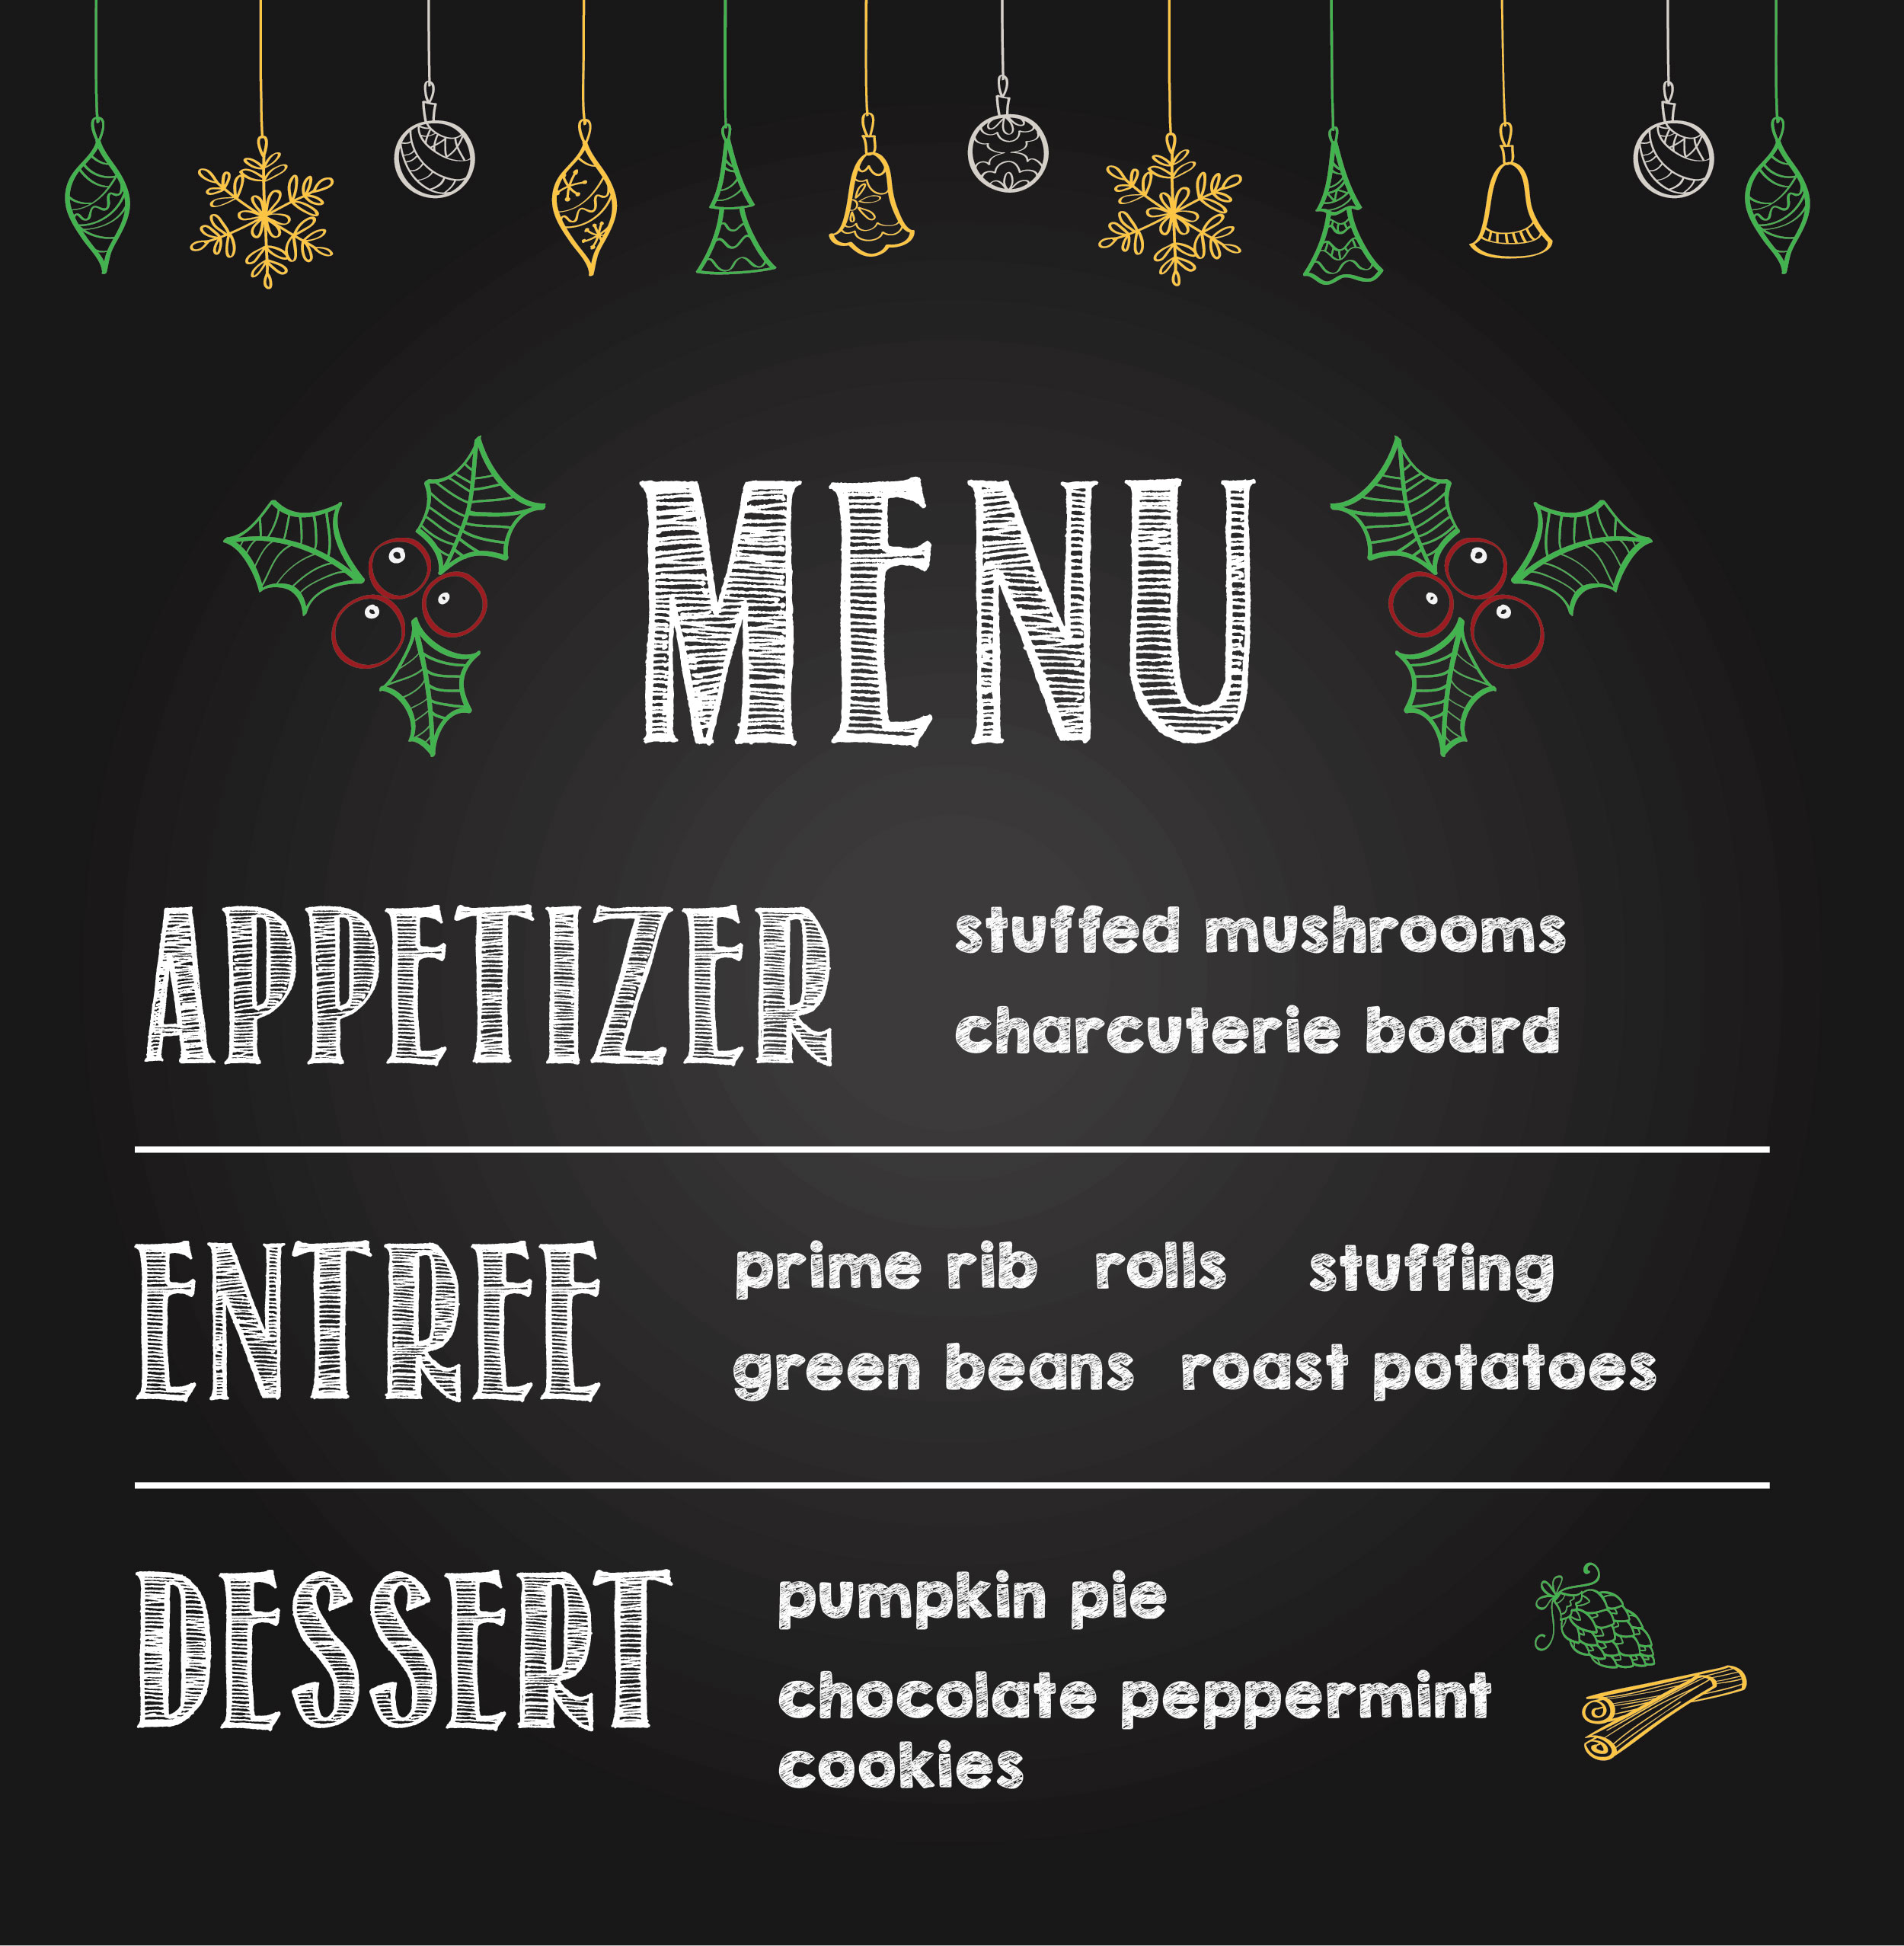 Illustration of chalkboard menu with appetizer, entree and dessert items listed.